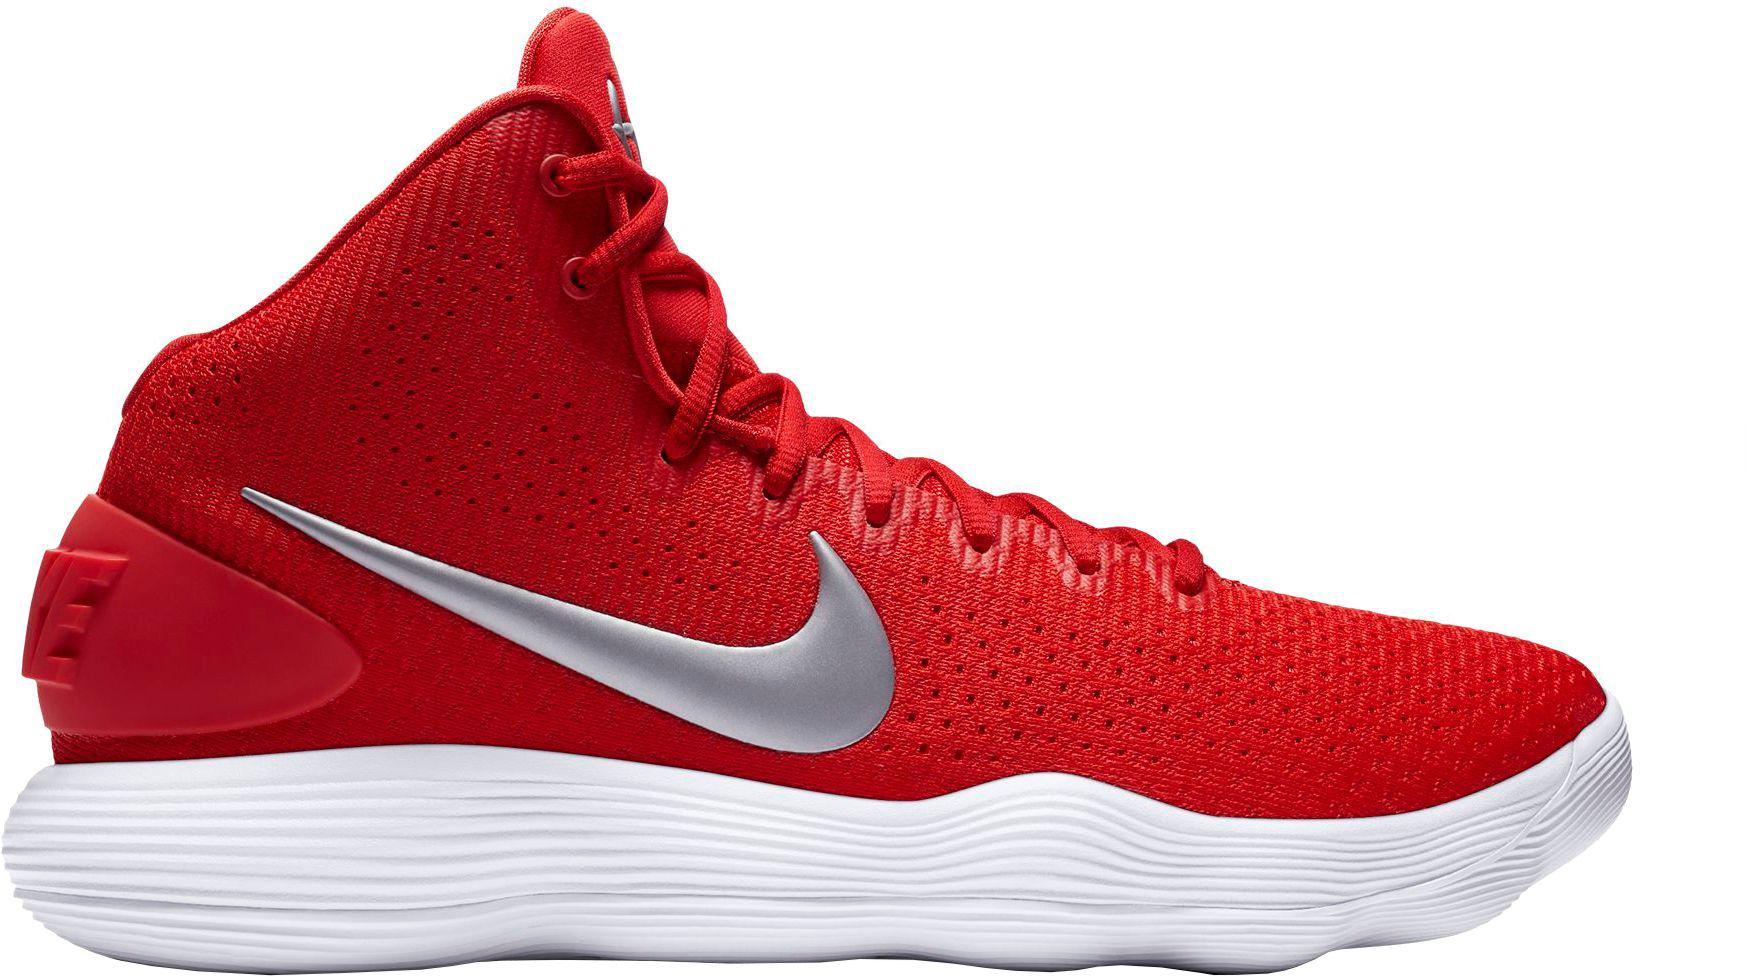 Shop Nike Hyperdunk , , nike hyperdunks best price and shoes from DICK'S Sporting Goods. Browse all styles of the Nike Hyperdunk in a range of sizes, styles and. Browse all styles of the Nike Hyperdunk in Best Price On Nike Hyperdunks a range of sizes, styles and.